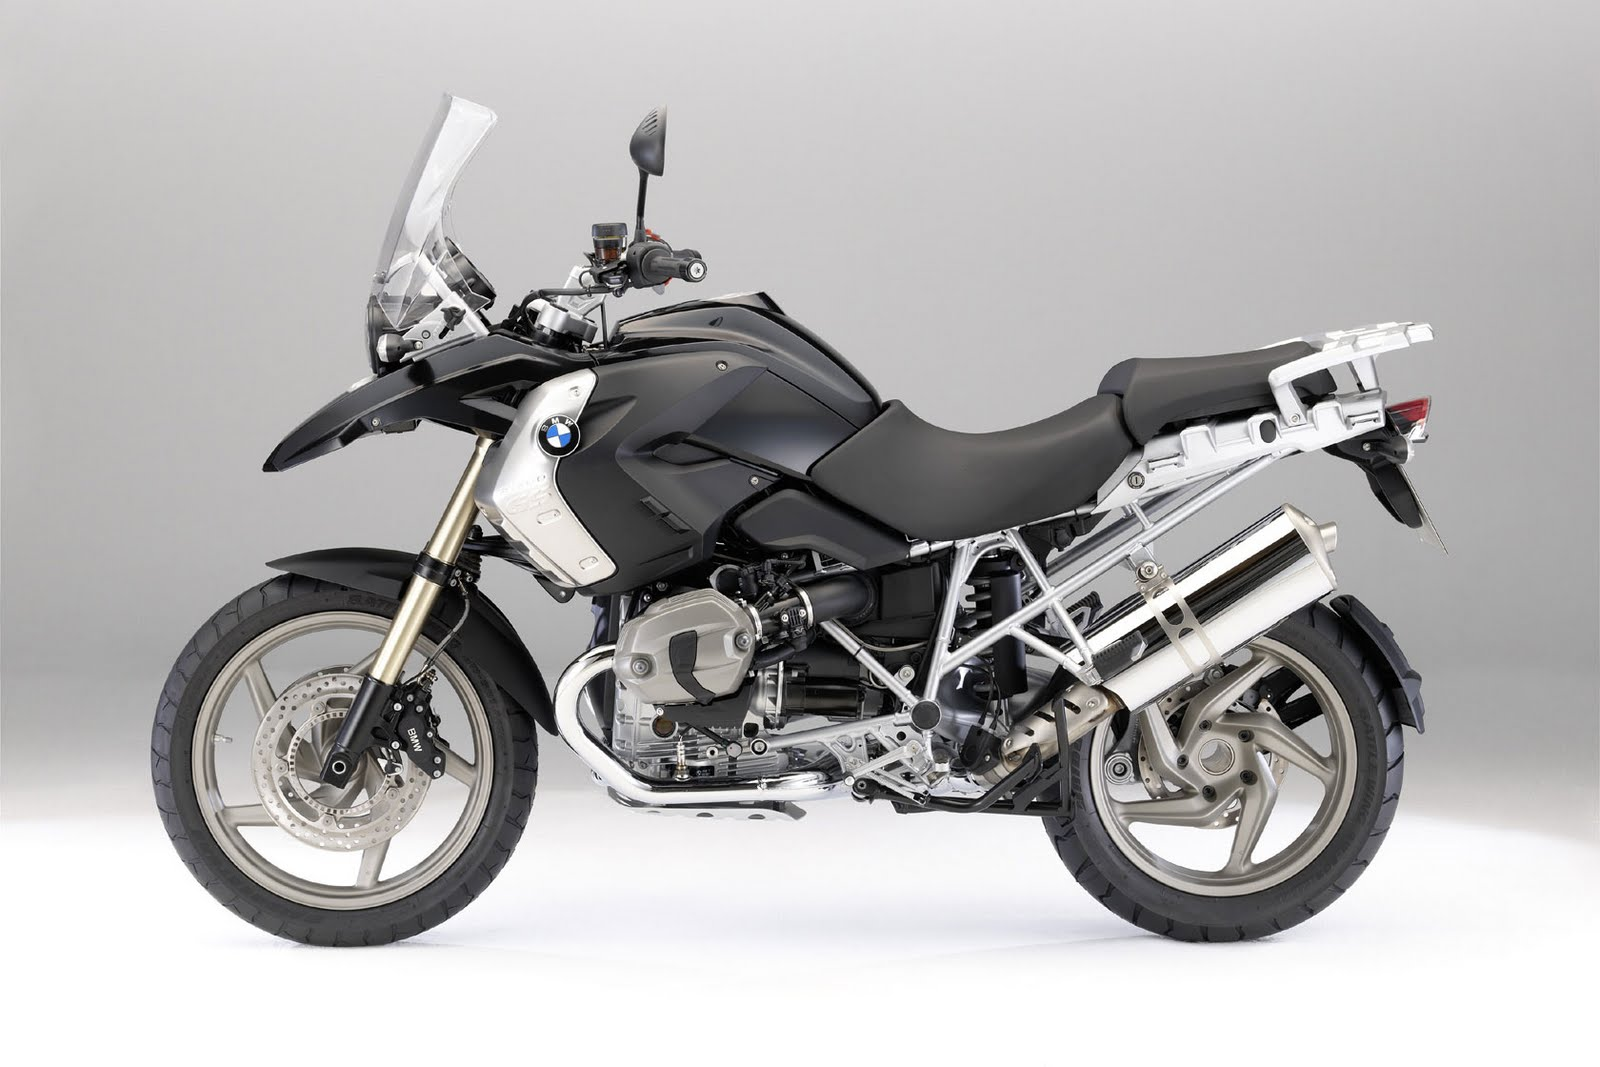 The Best Of Motorcycle 2010 Bmw R1200gs